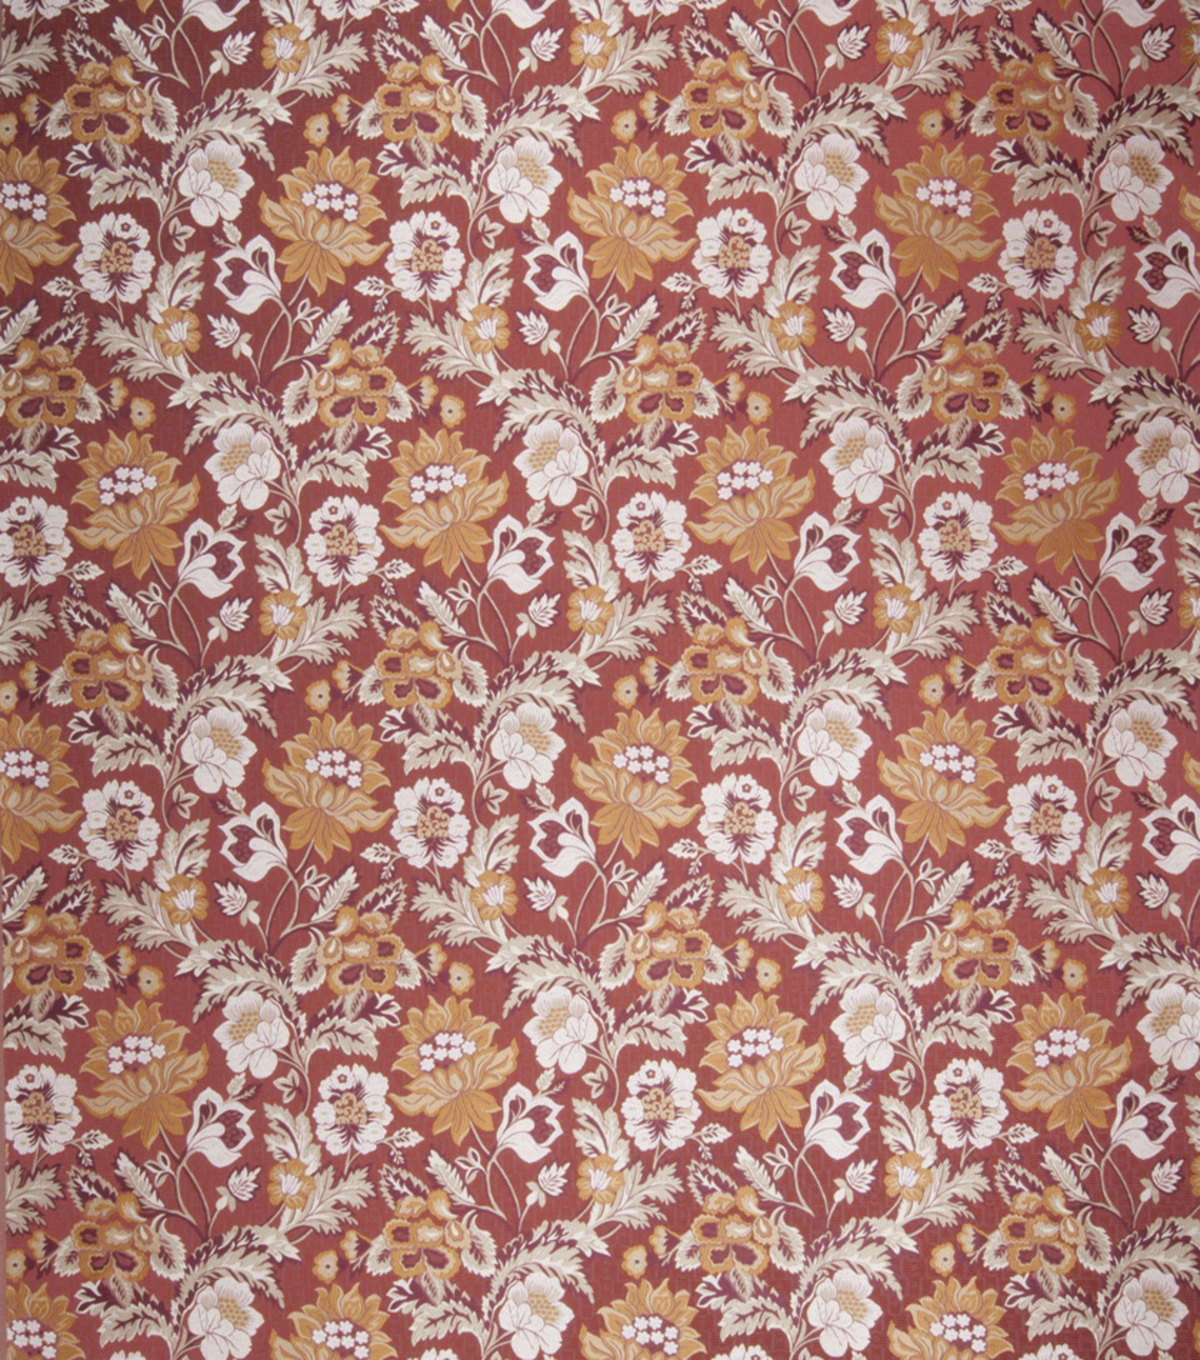 "Home Decor 8""x8"" Fabric Swatch-Upholstery Fabric Eaton Square Annex Russet"